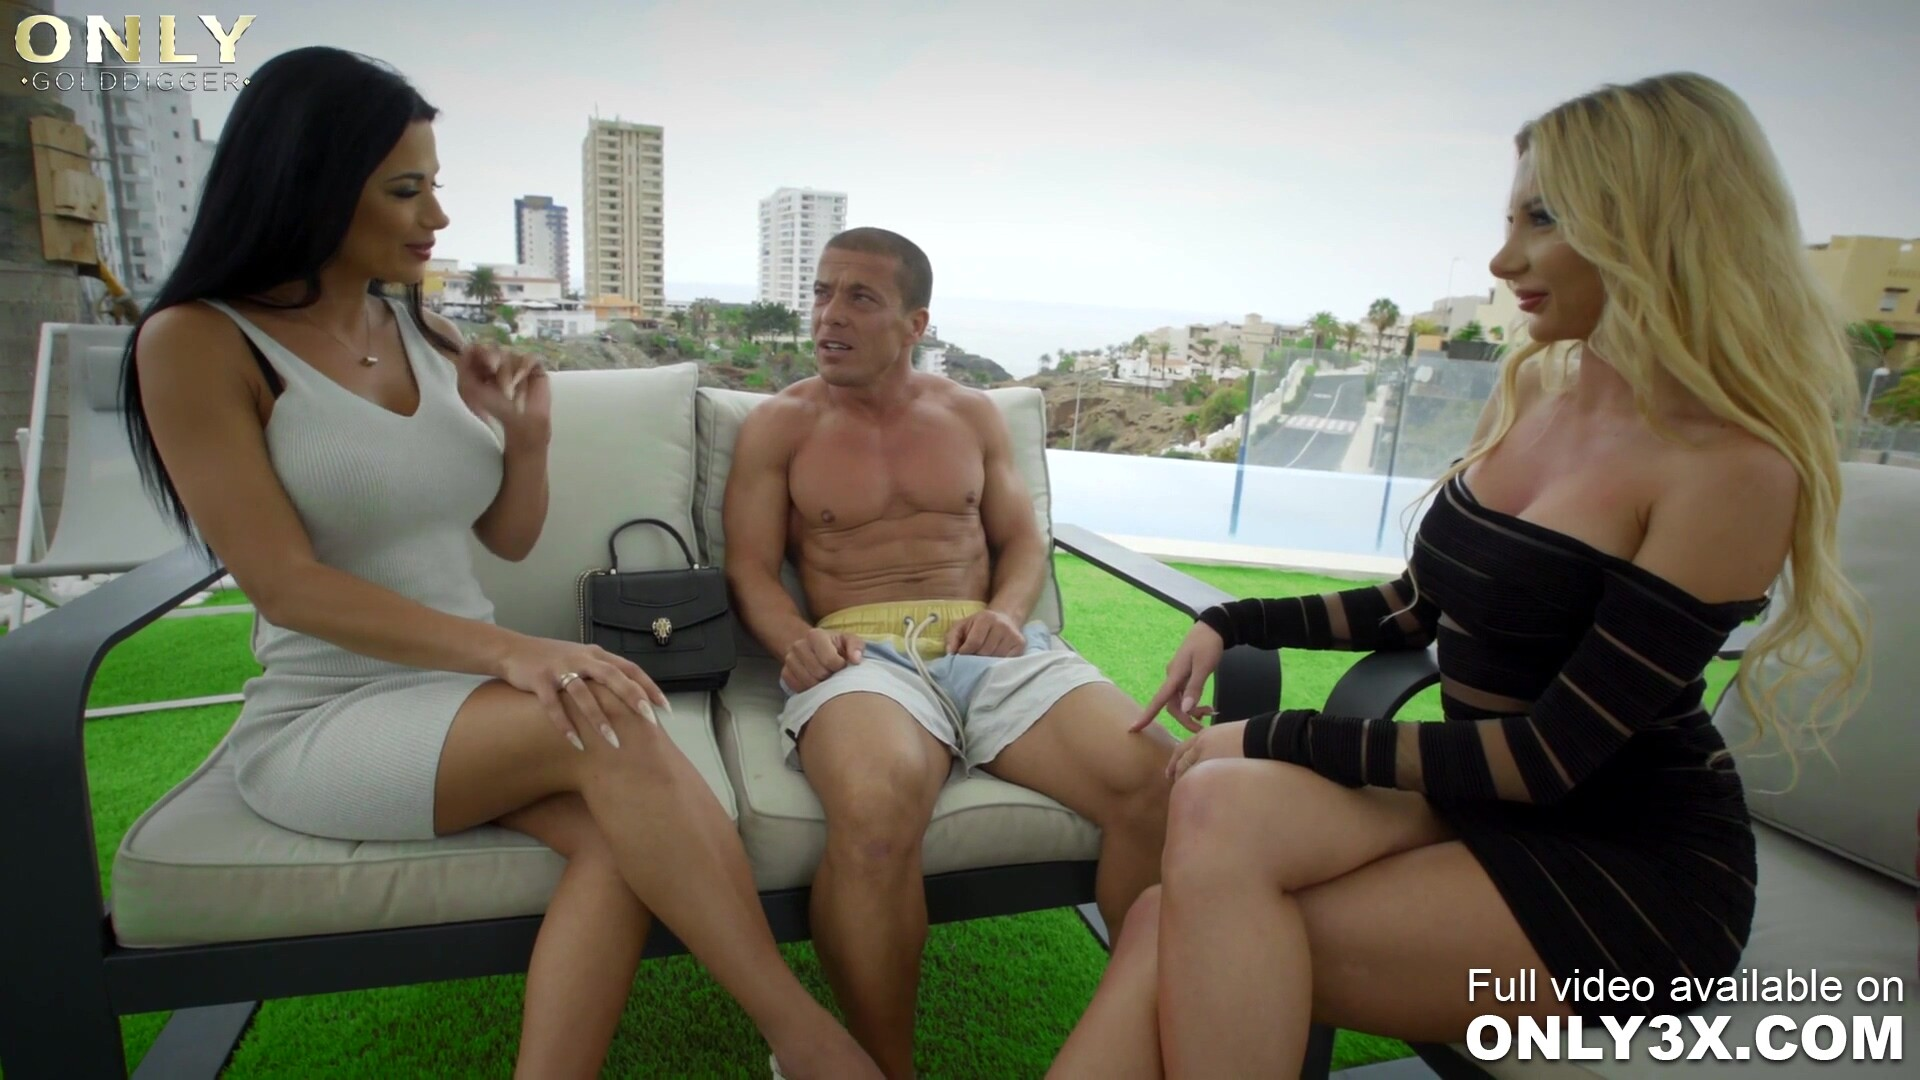 Tarts Shalina Devine and Marilyn Crystal get creamed by personal trainer